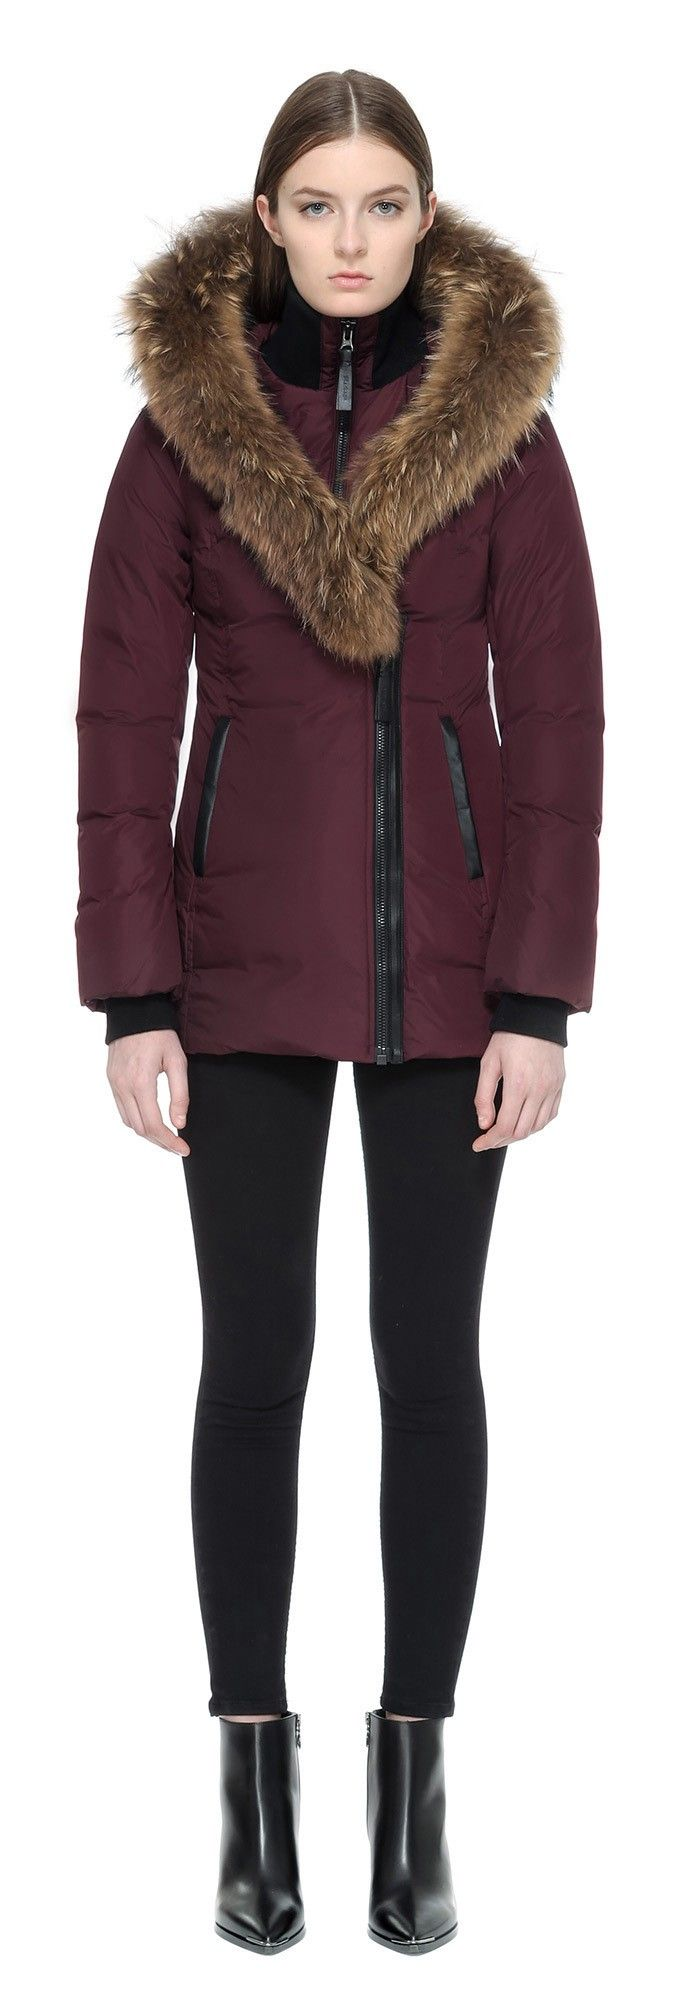 ADALI FITTED WINTER DOWN COAT WITH FUR HOOD IN BORDEAUX